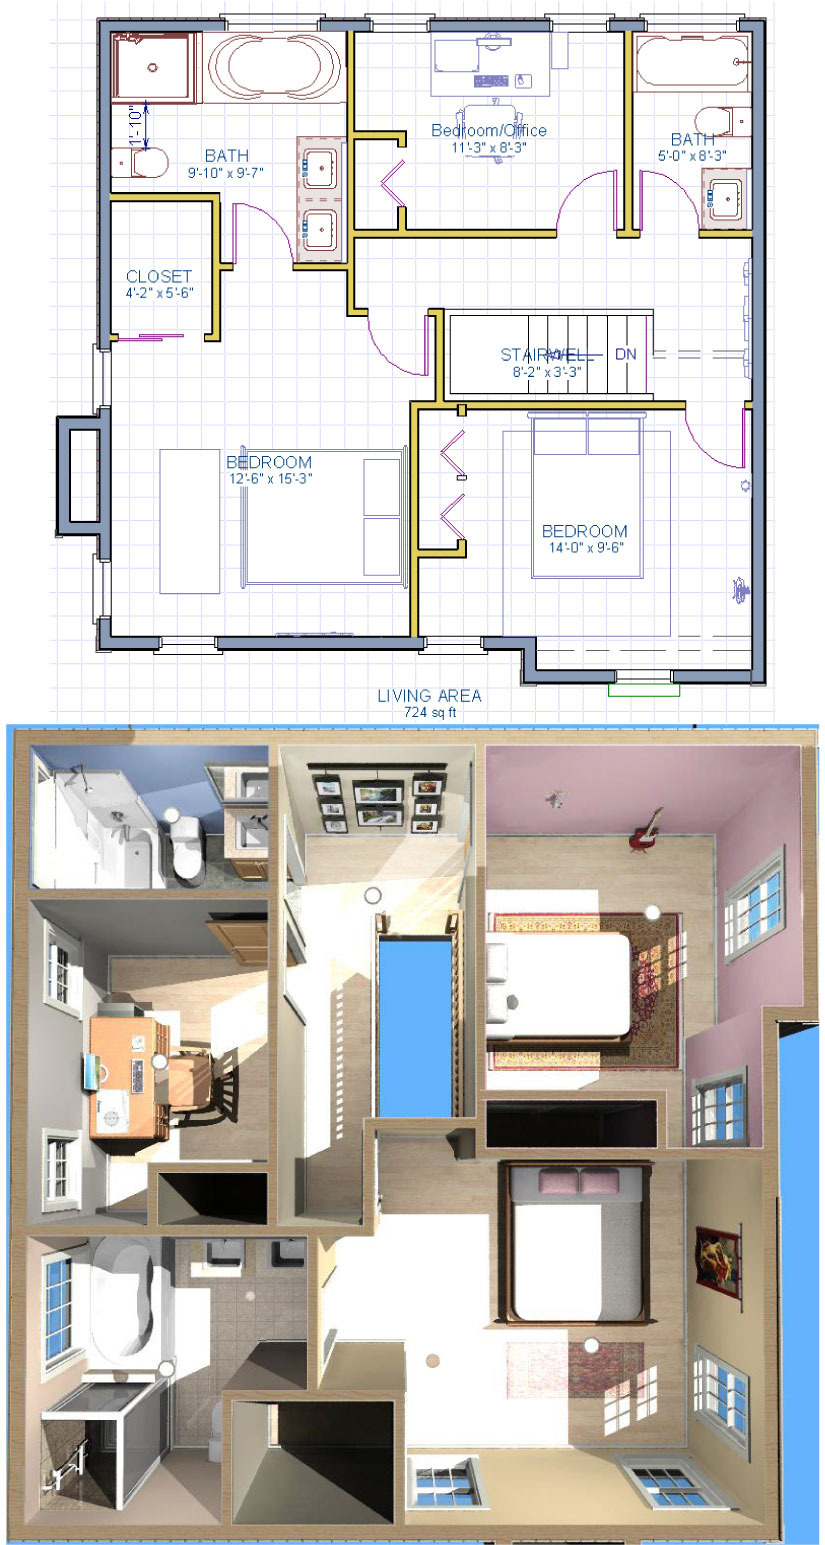 House Plans north Carolina New the north Carolina Colonial House Plan Simply Additions